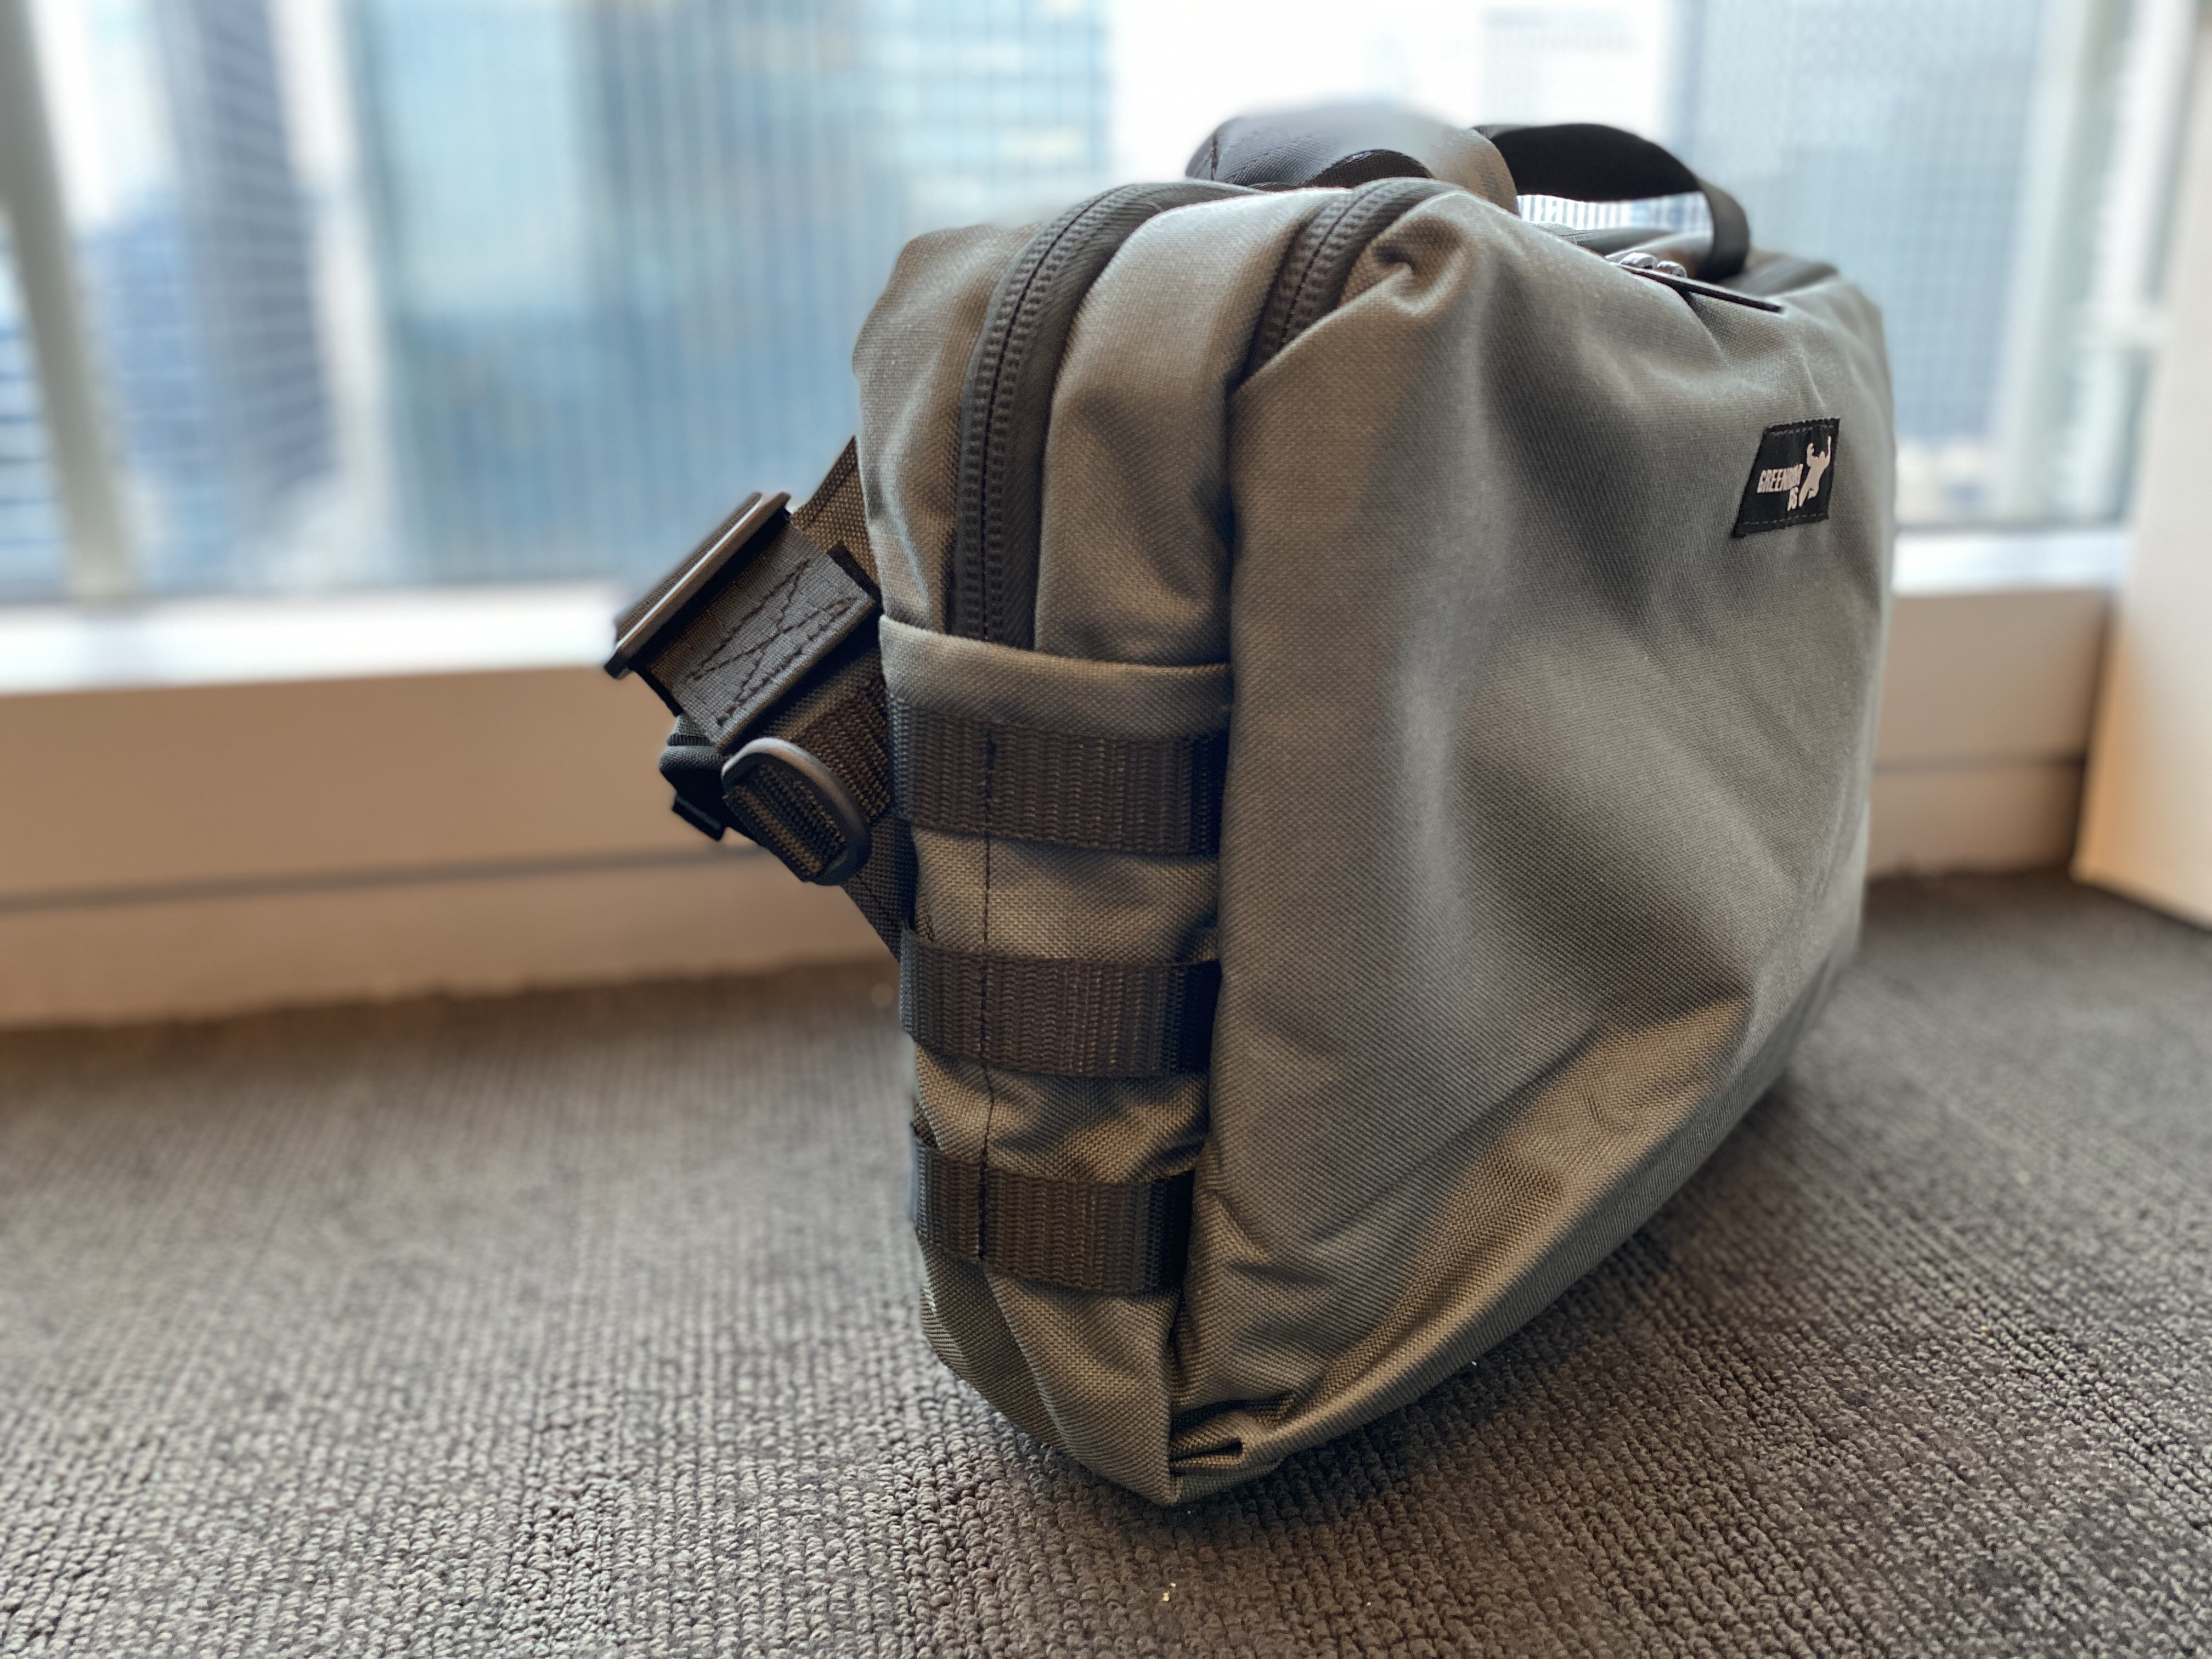 Greenroom136 Mission Attache side panel with PALs MOLLE